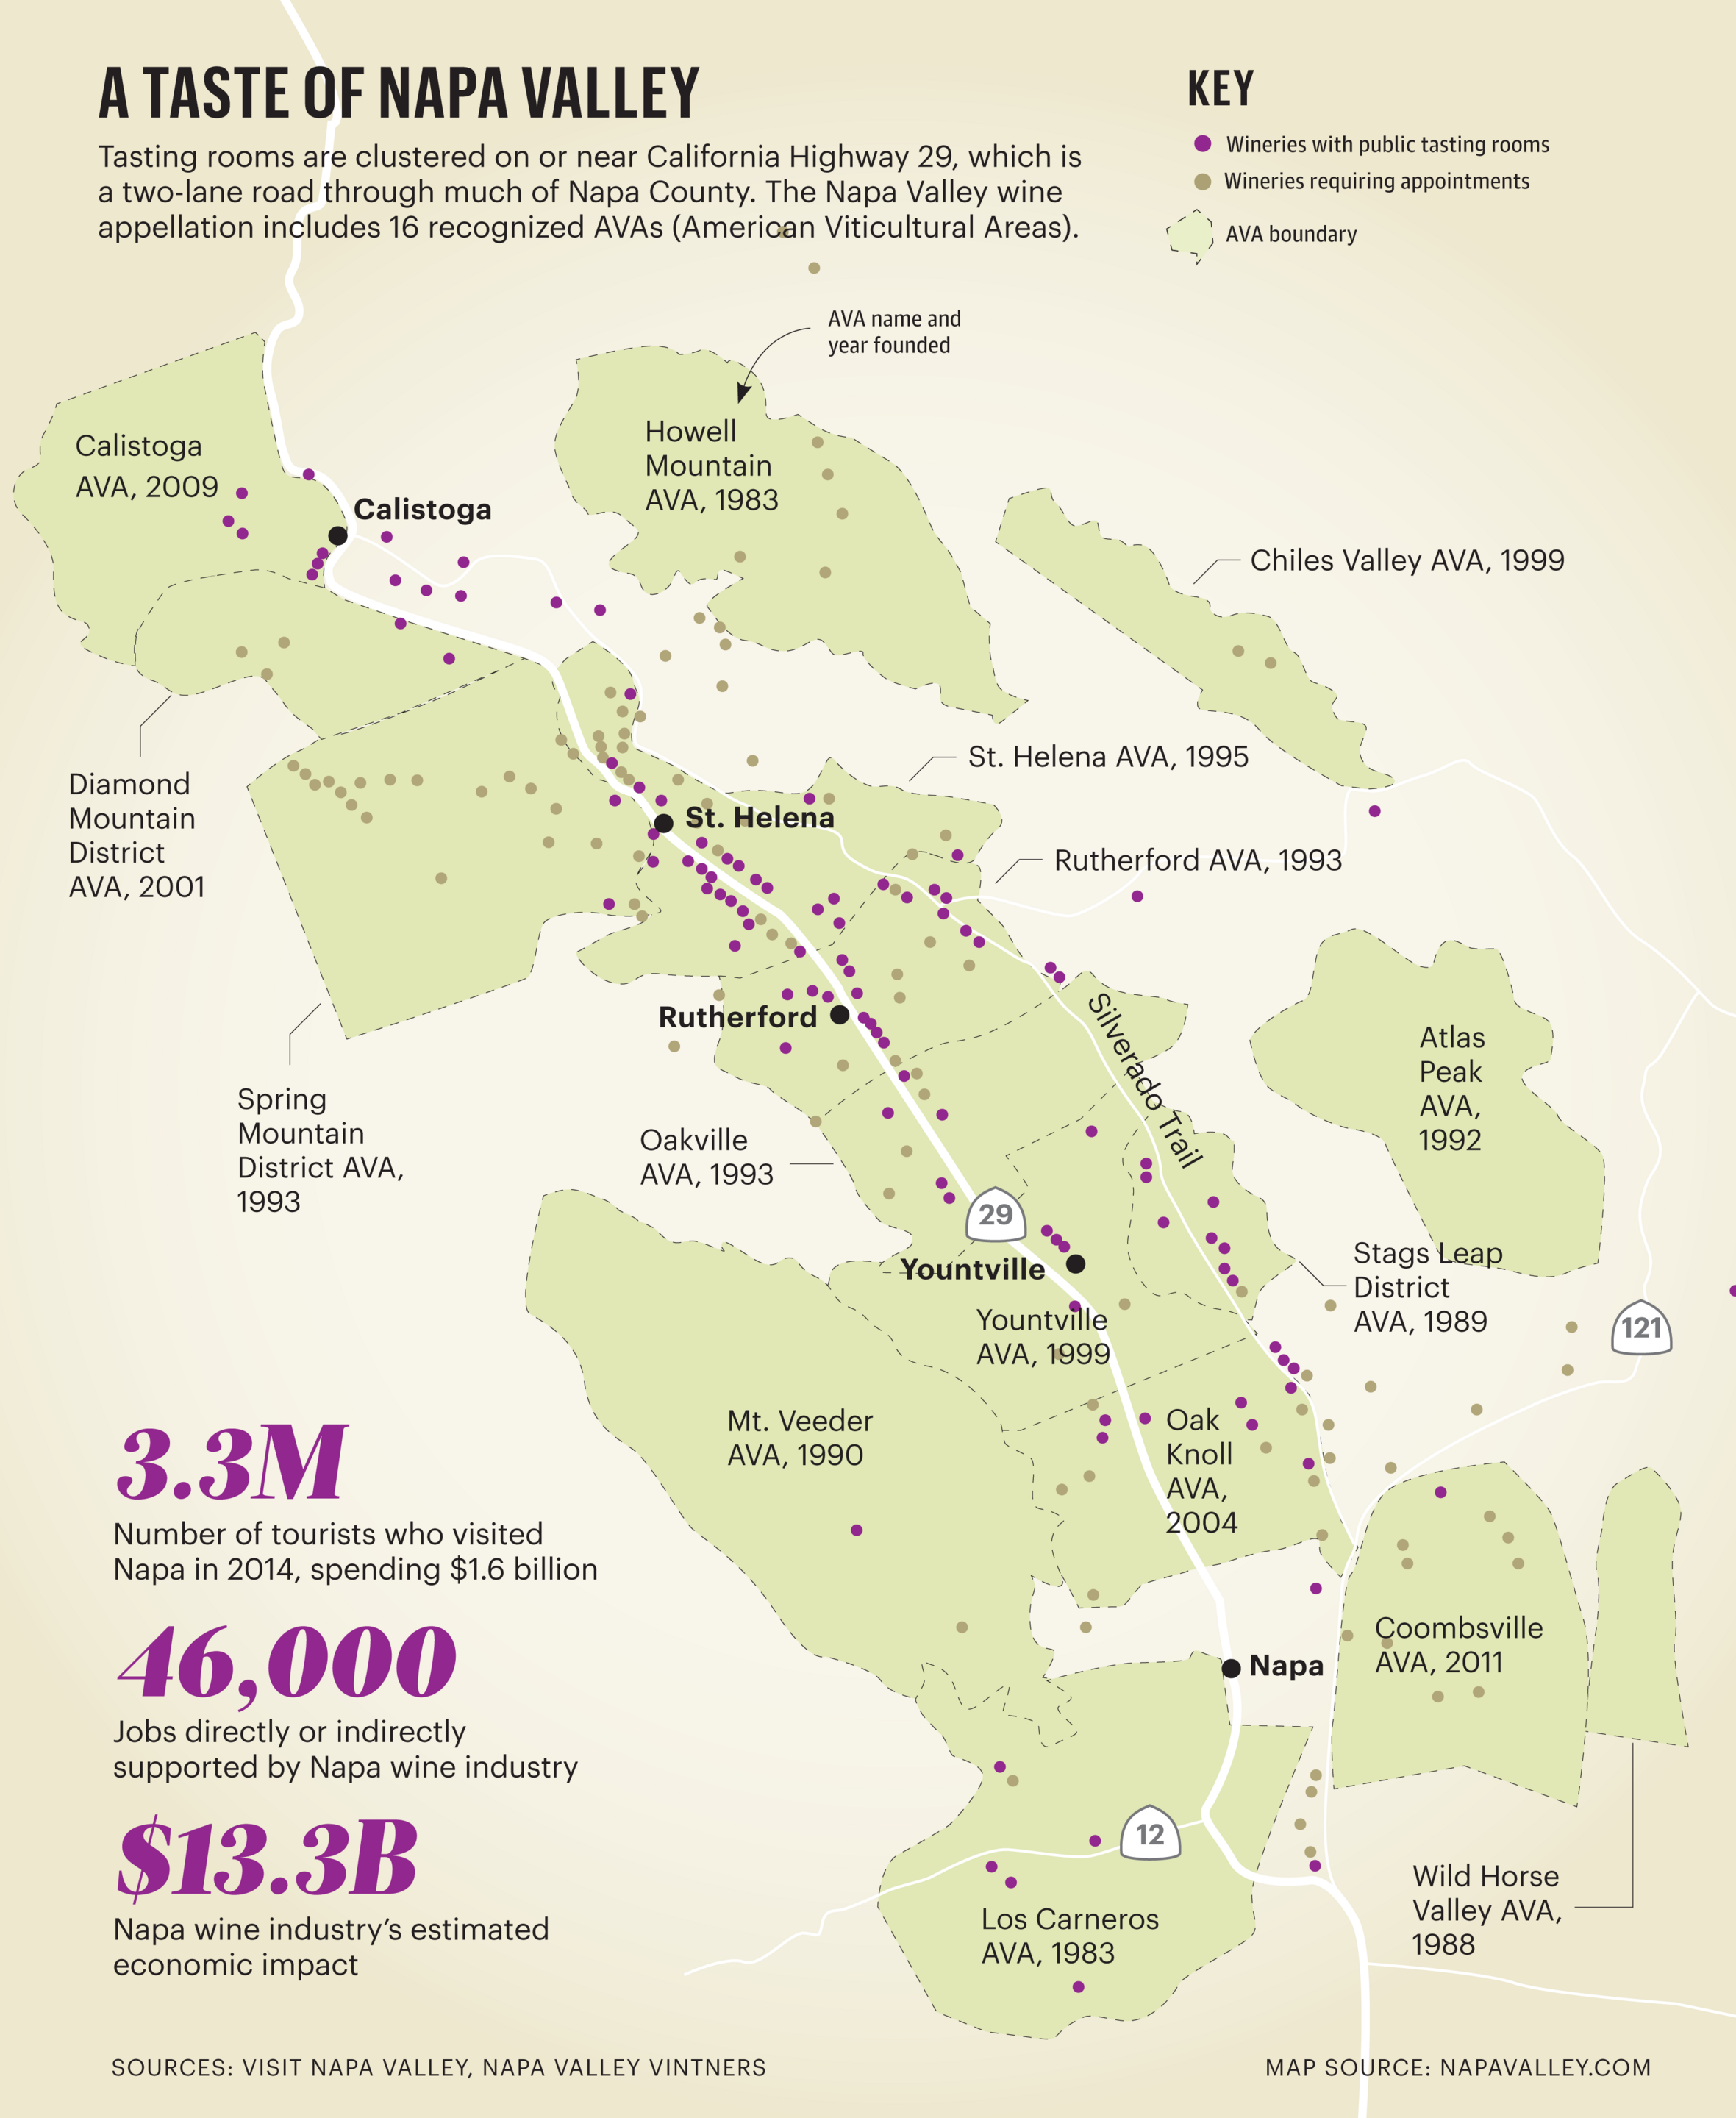 The contribution of the sangiovese wine and the napa valley to the wine industry